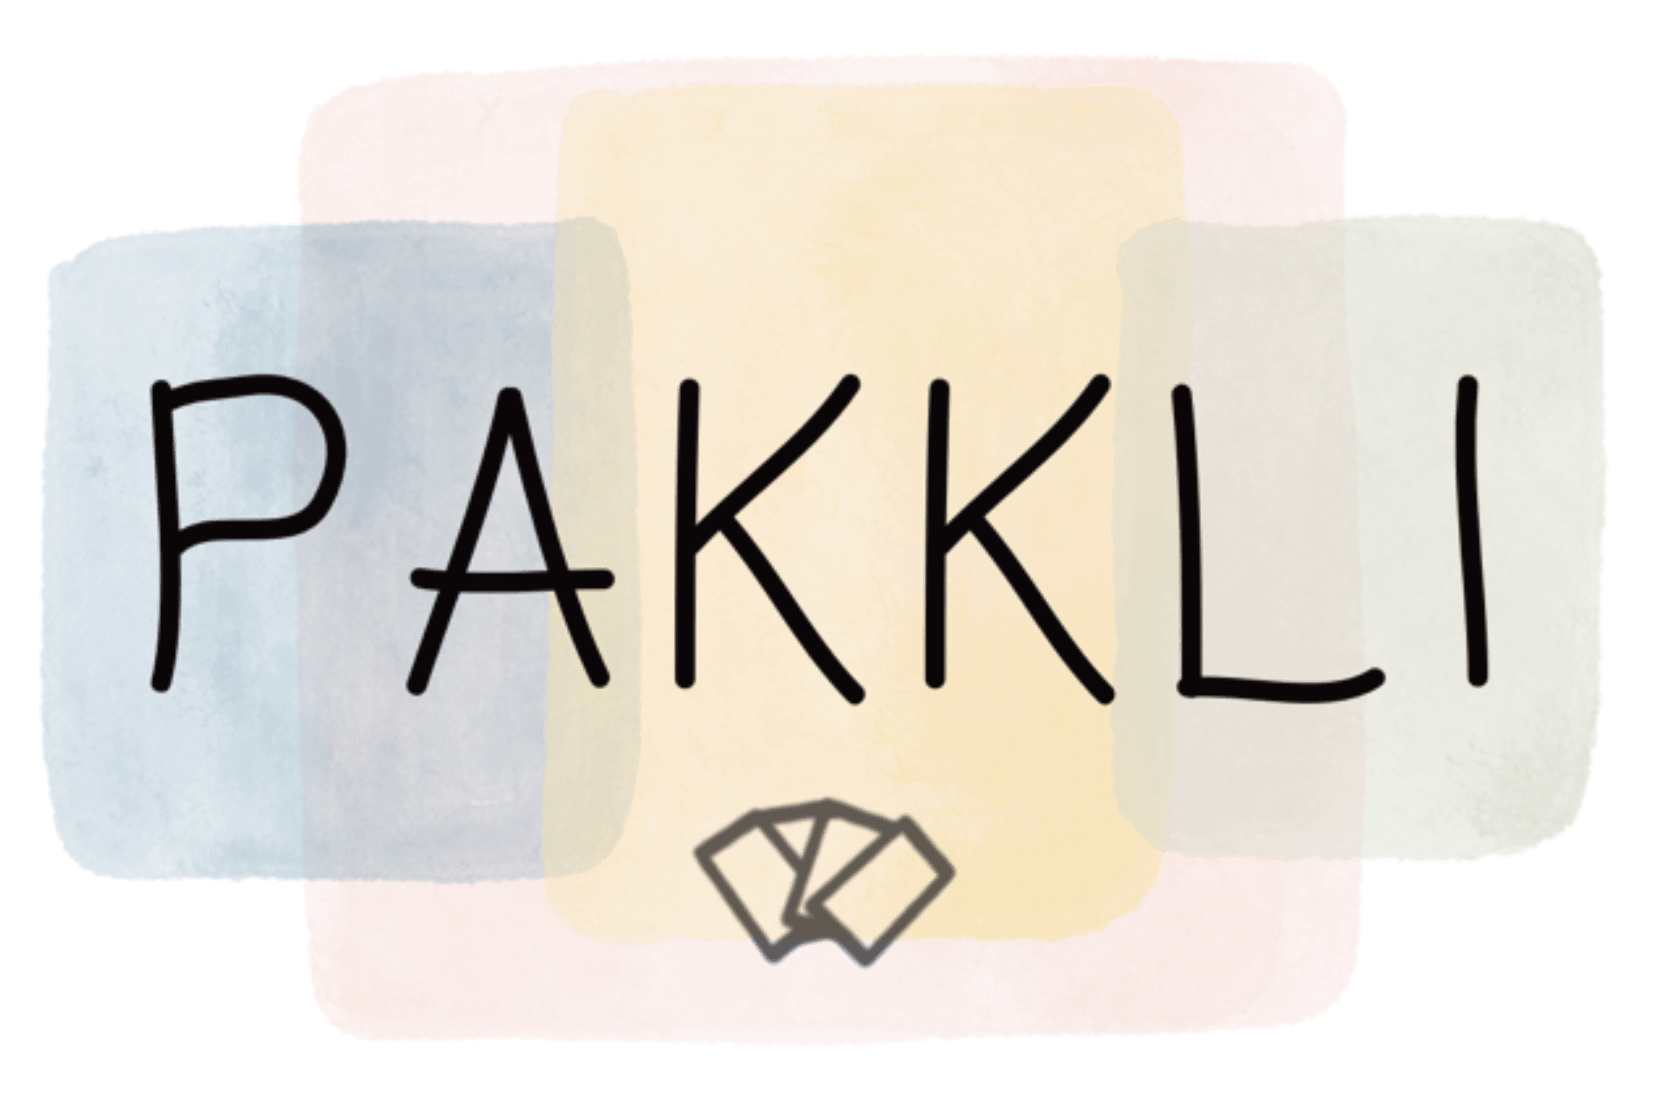 Pakkli logo small cropped